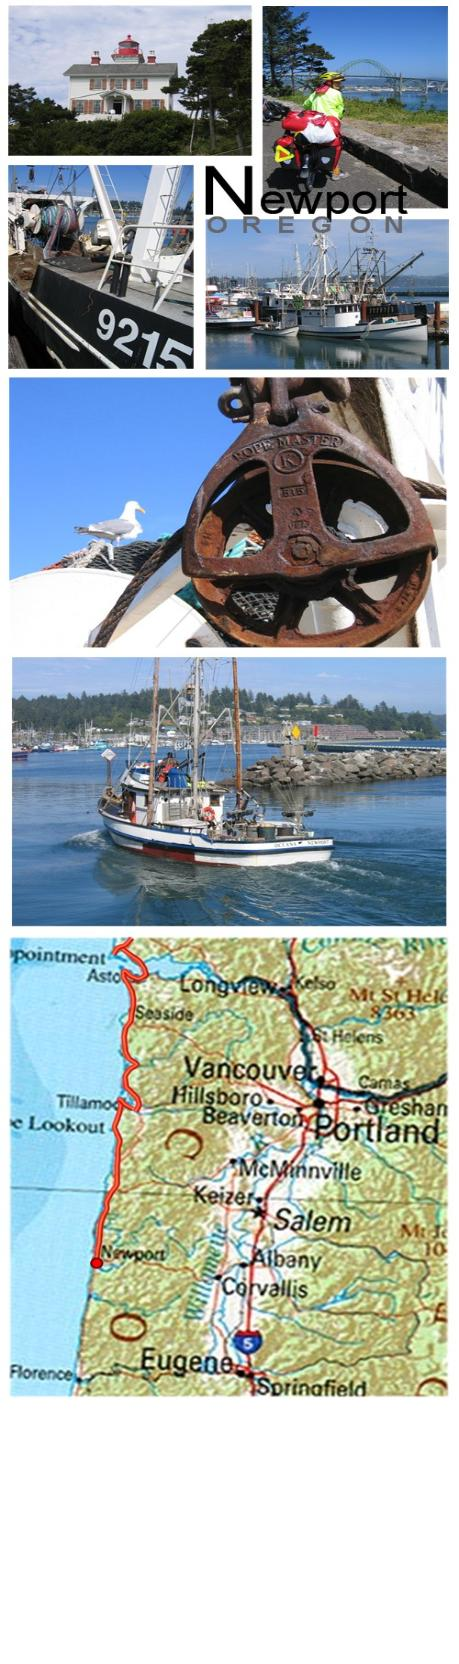 Cycle (Bicycle) touring photos and map from Newport, Oregon